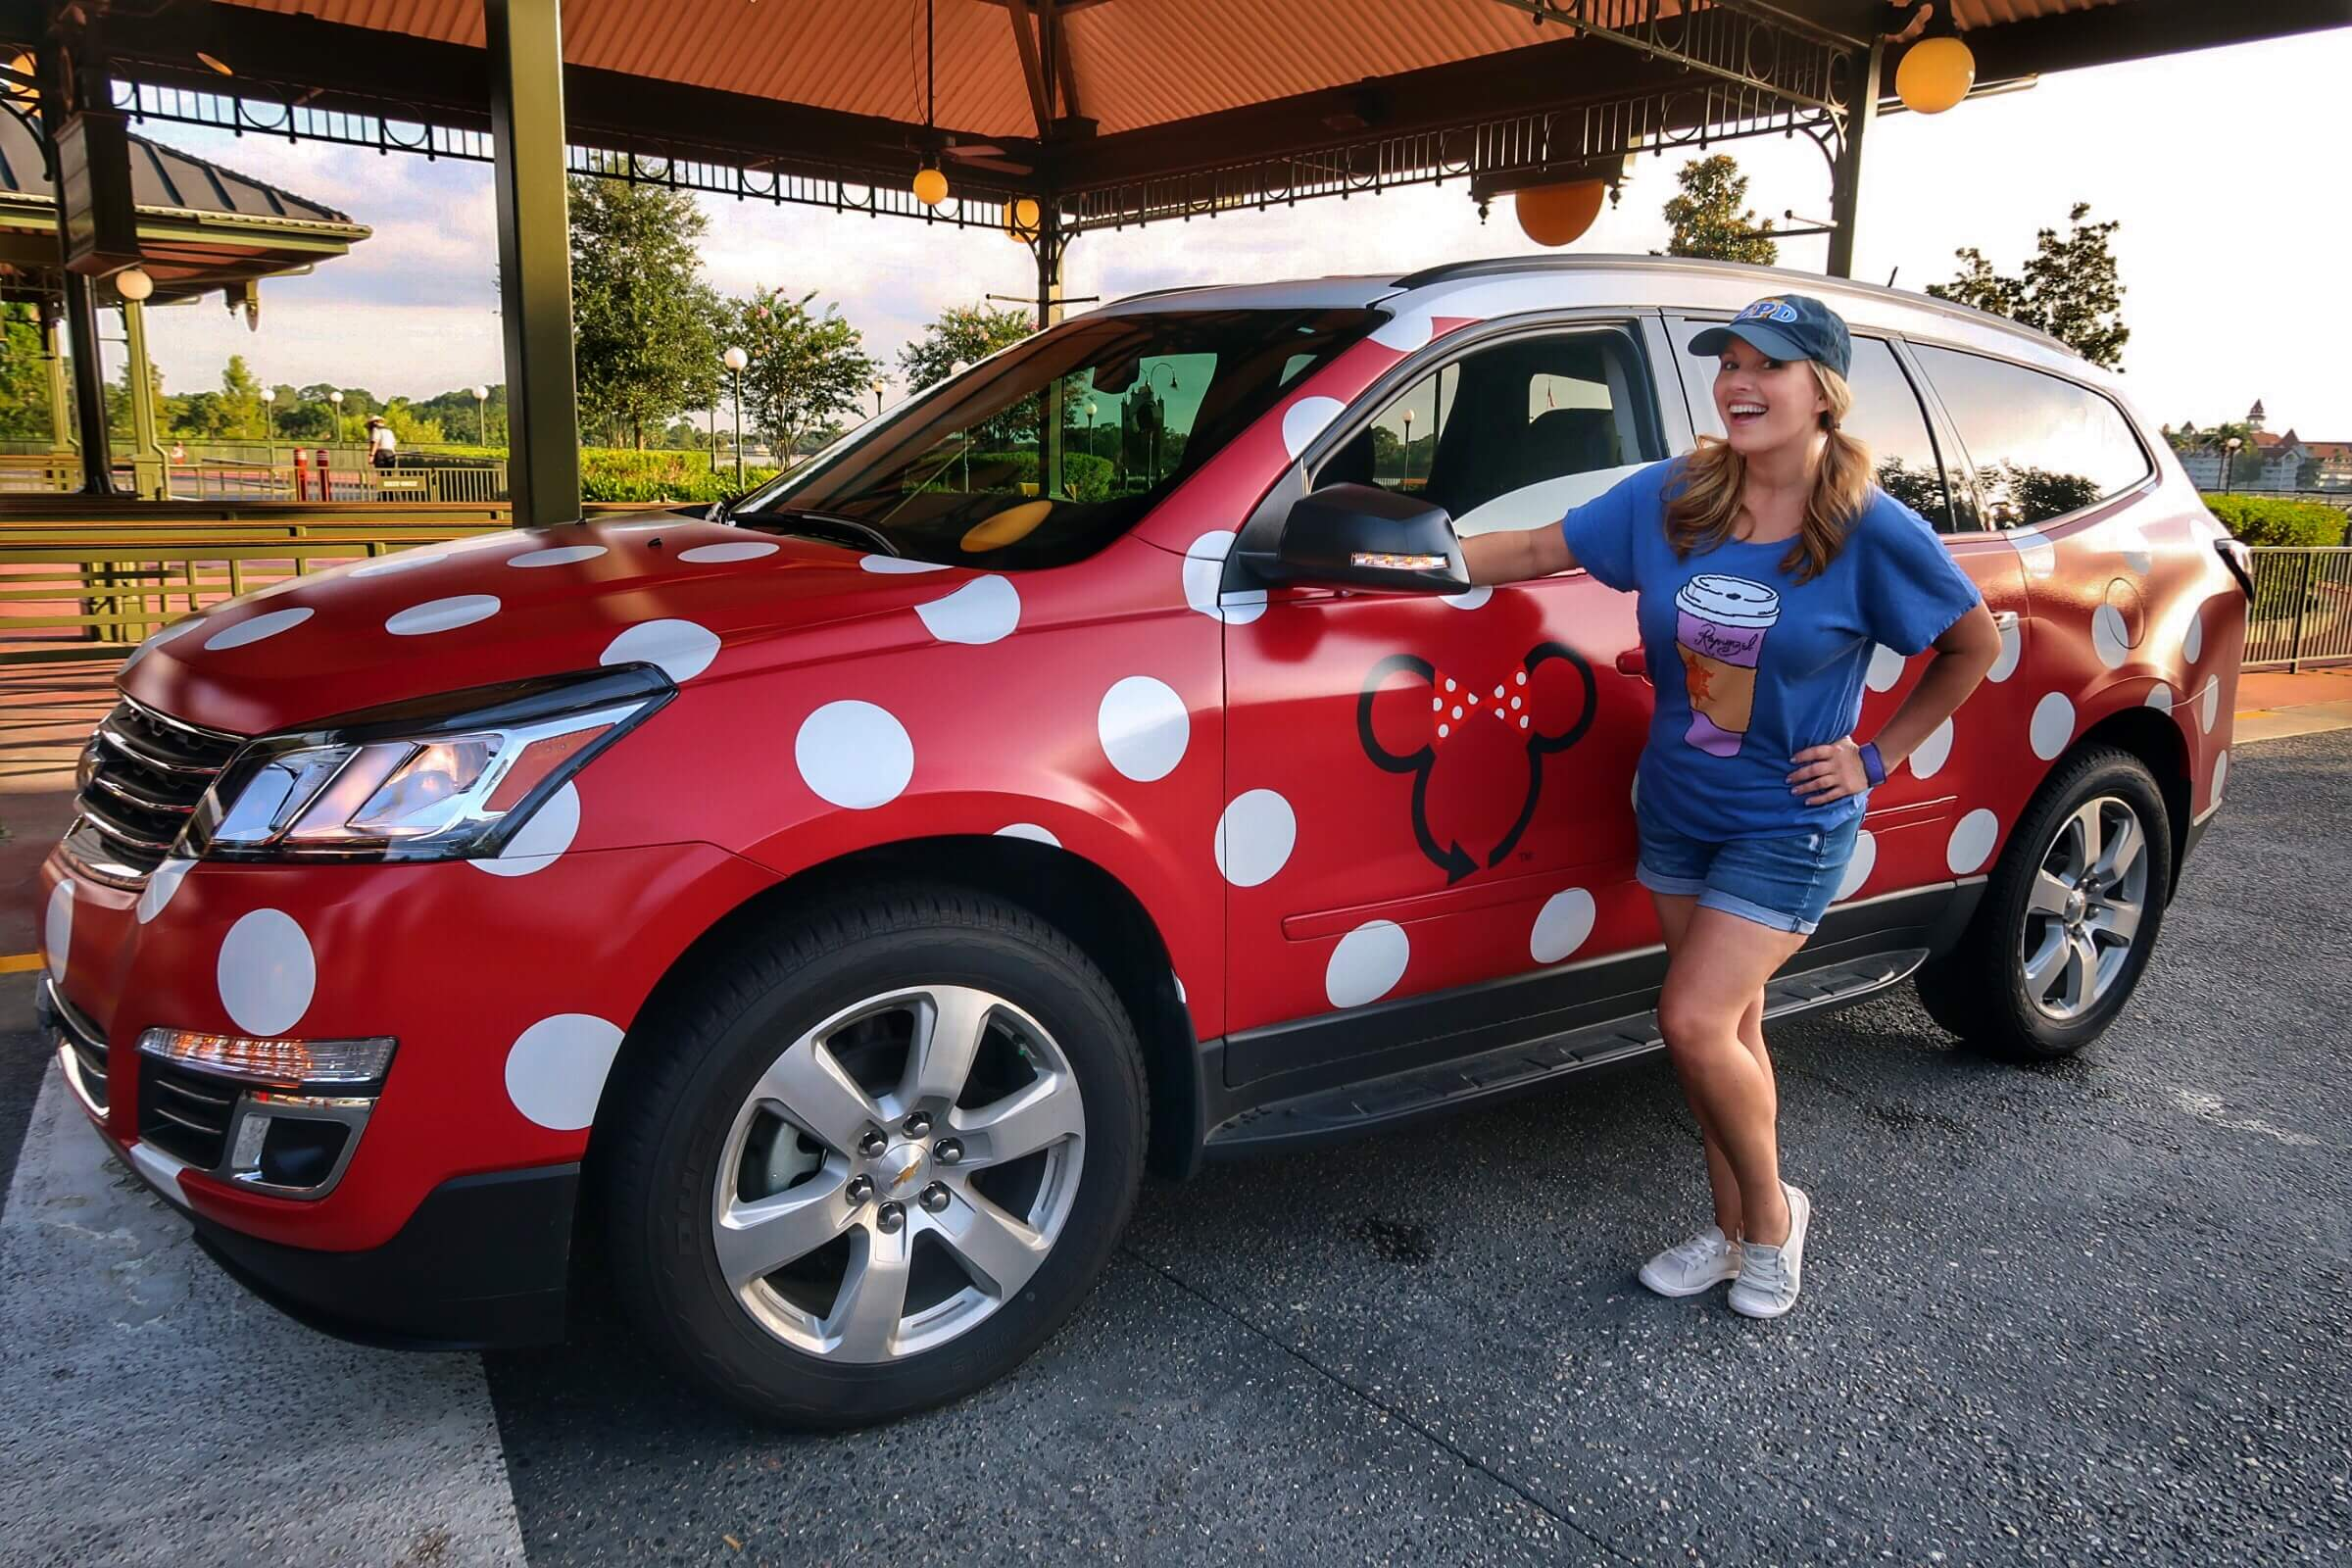 45dfa3057a Review  Minnie Vans are Disney World s own Taxi Service - Living By ...